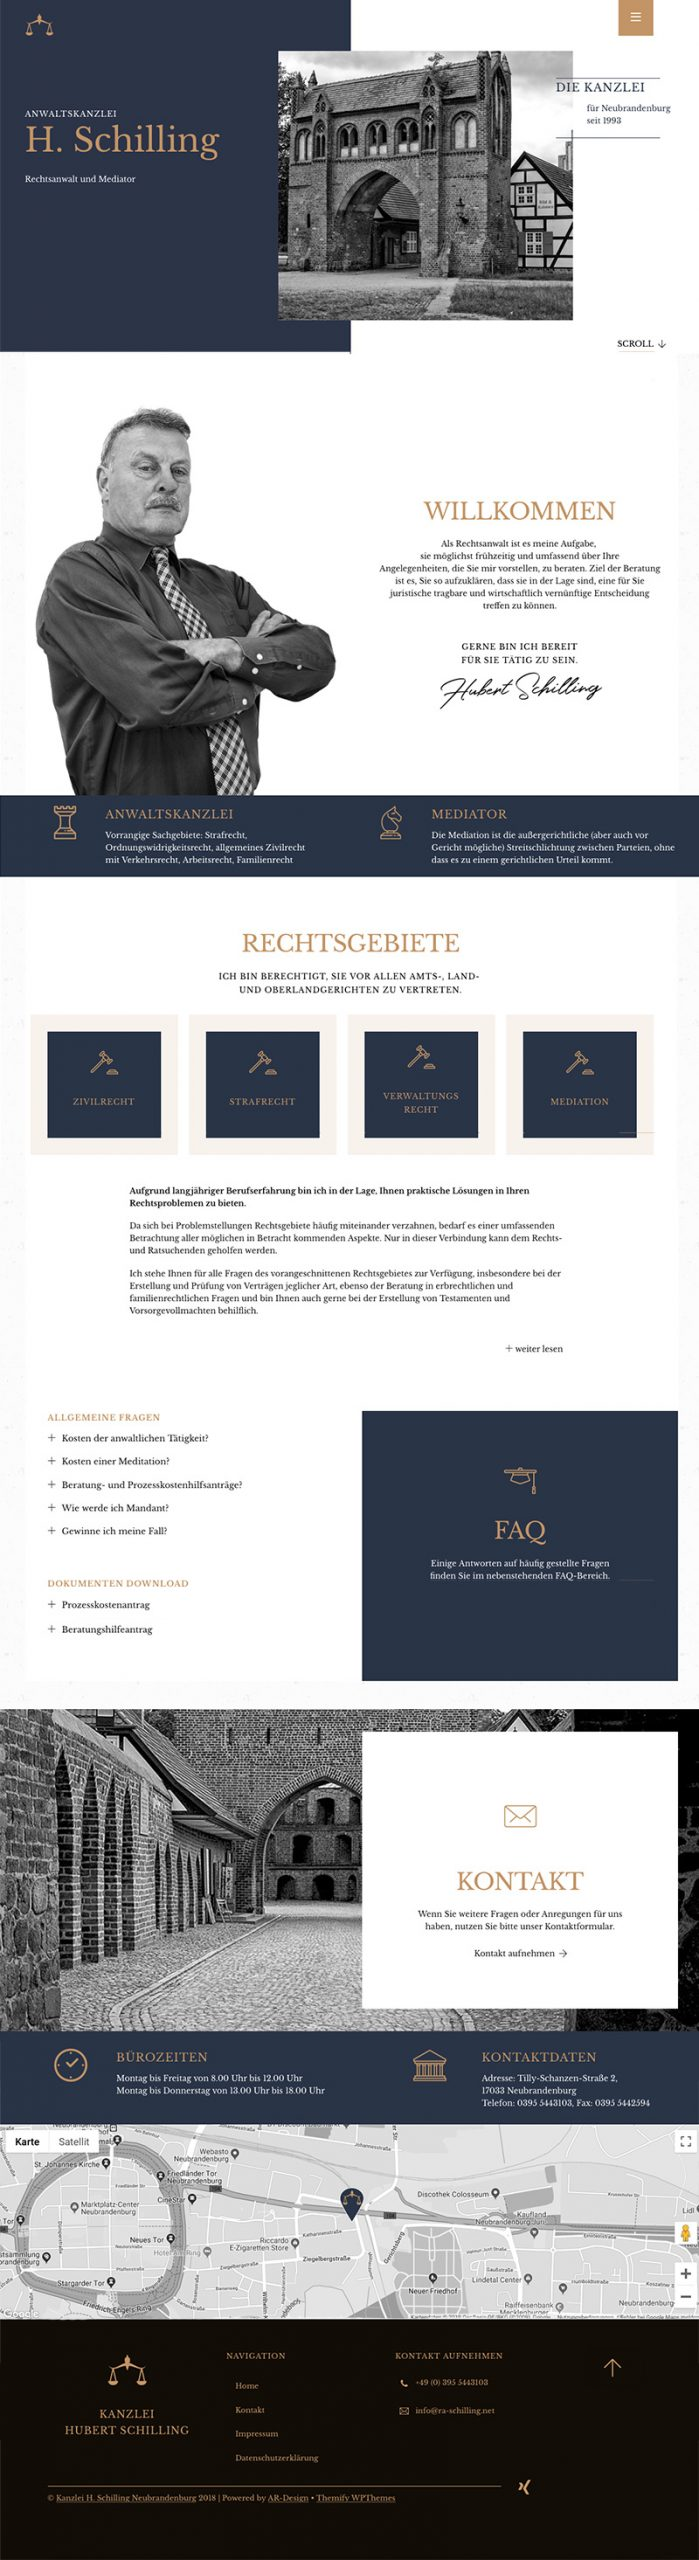 Screenshot Webdesign RA H. Schilling Neubrandenburg